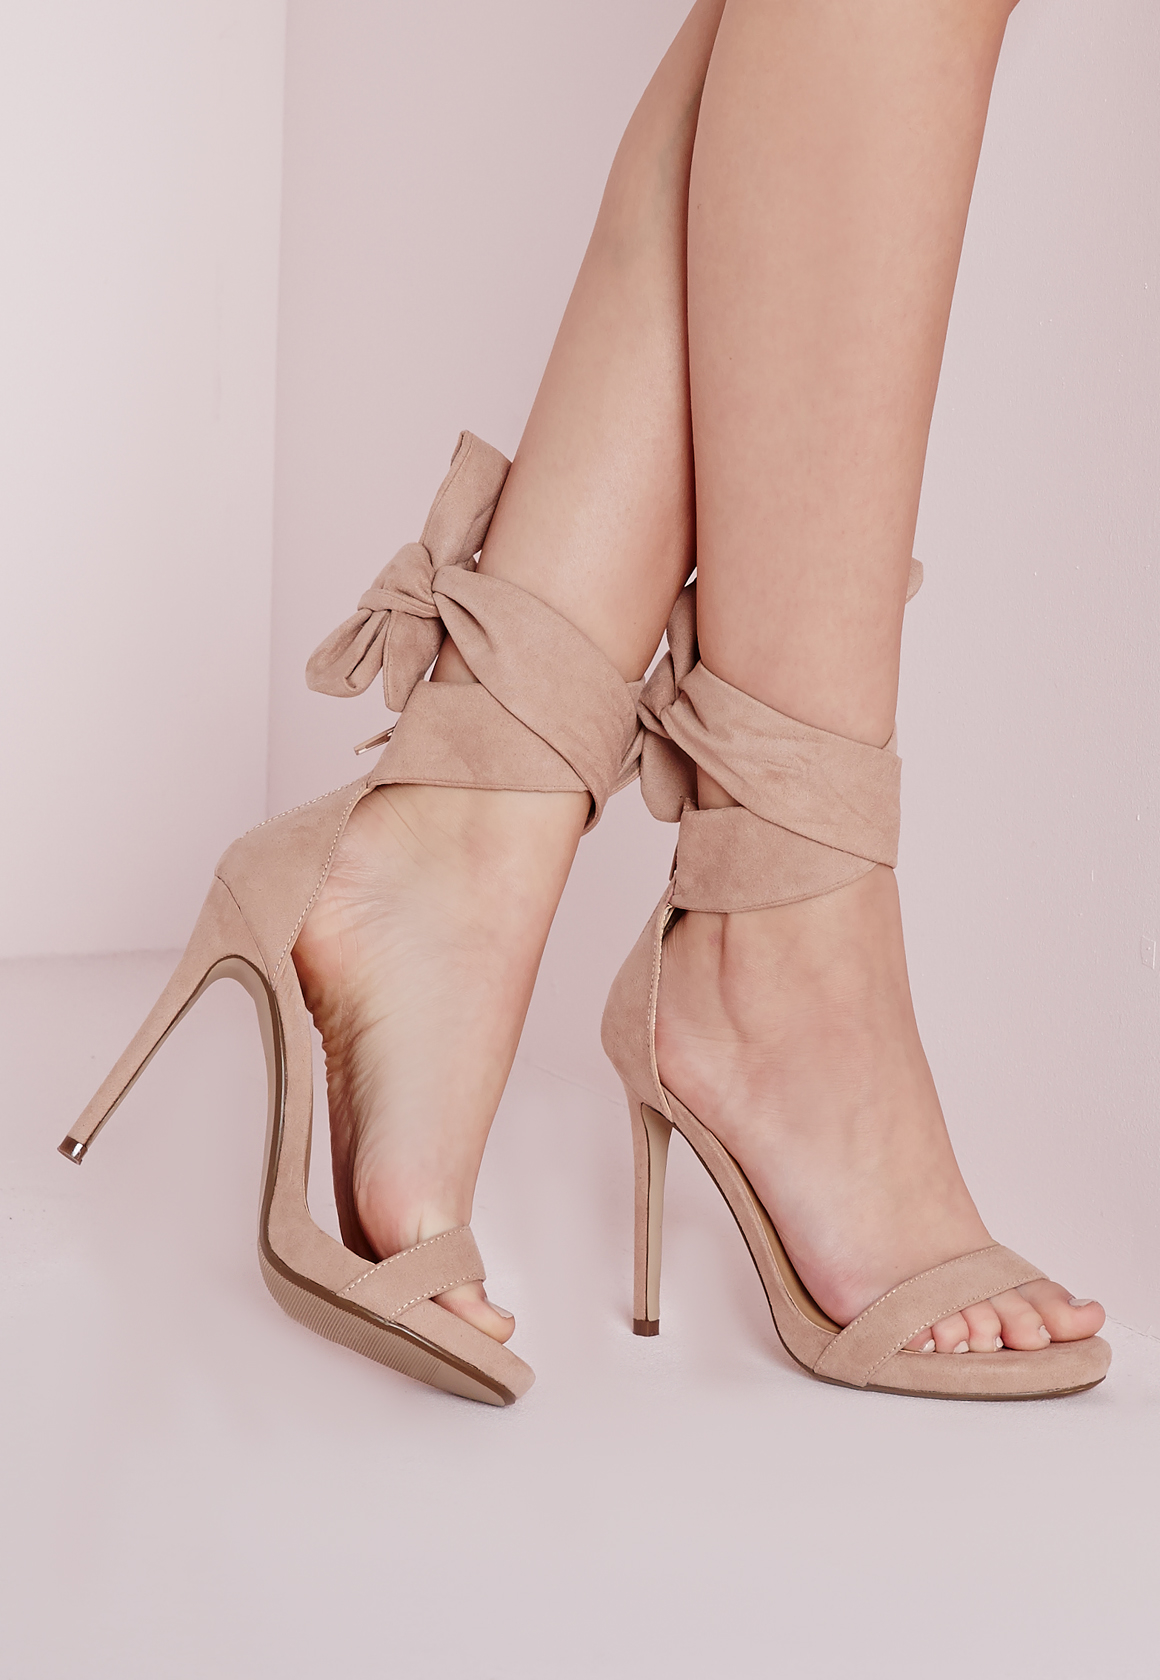 Women'S Shoes Nude 43